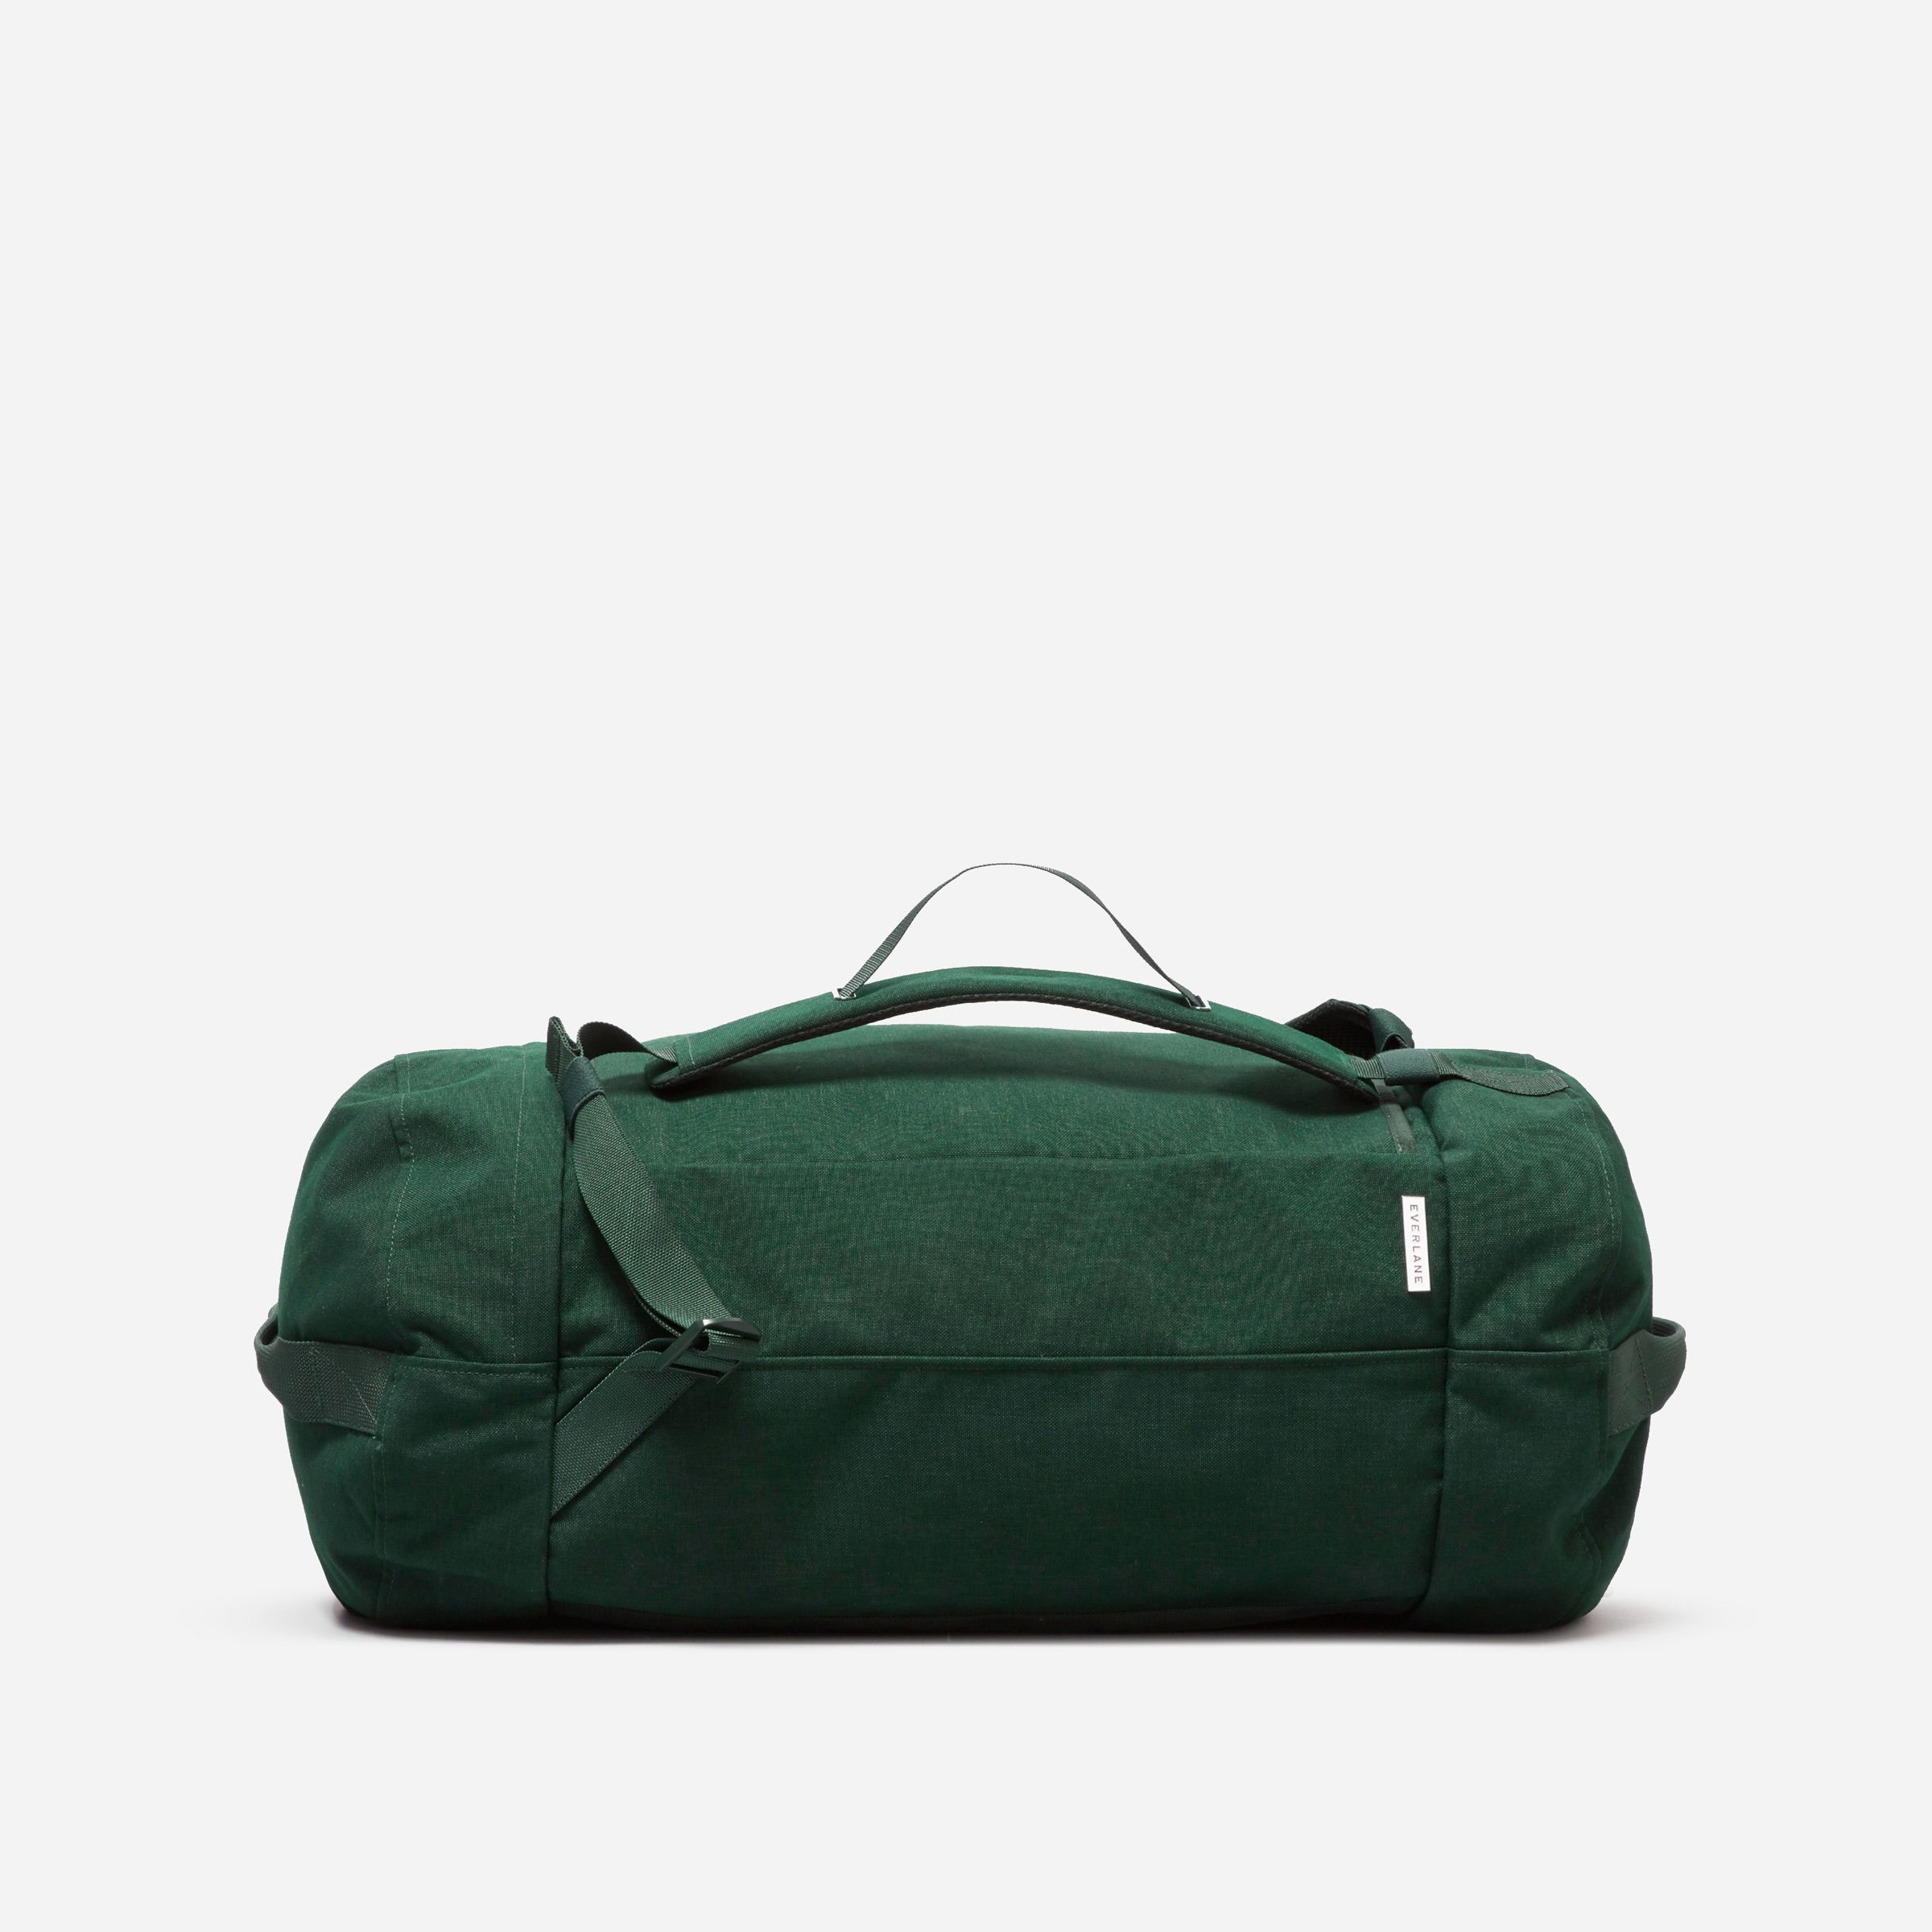 512db430838 16 of the Best Weekender Bags for Women in 2019